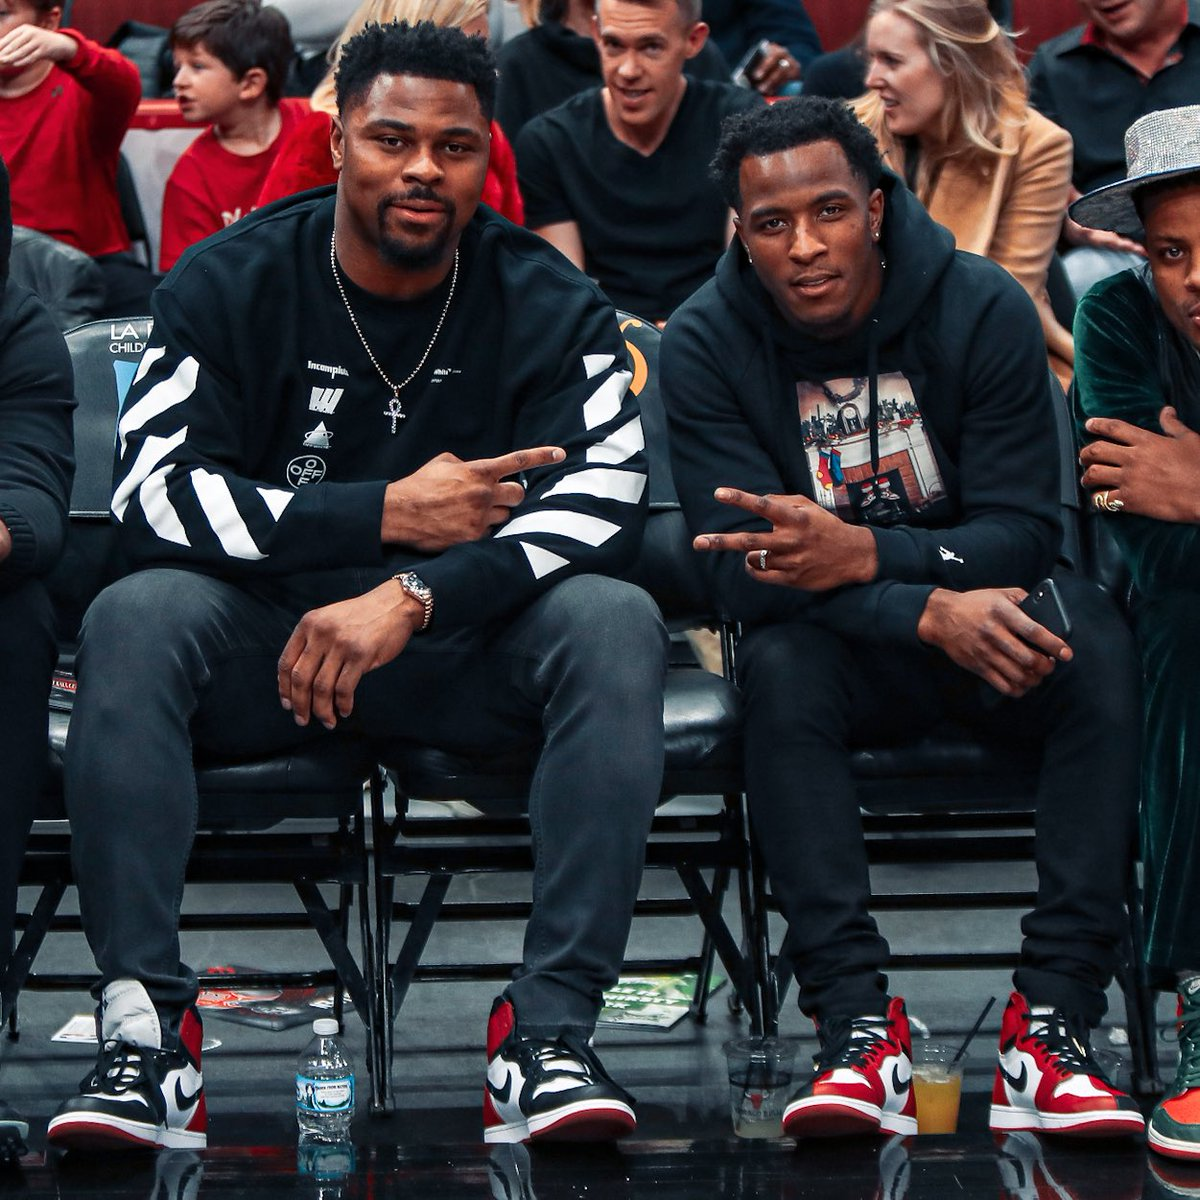 The matching Jordans complete this picture 🔥